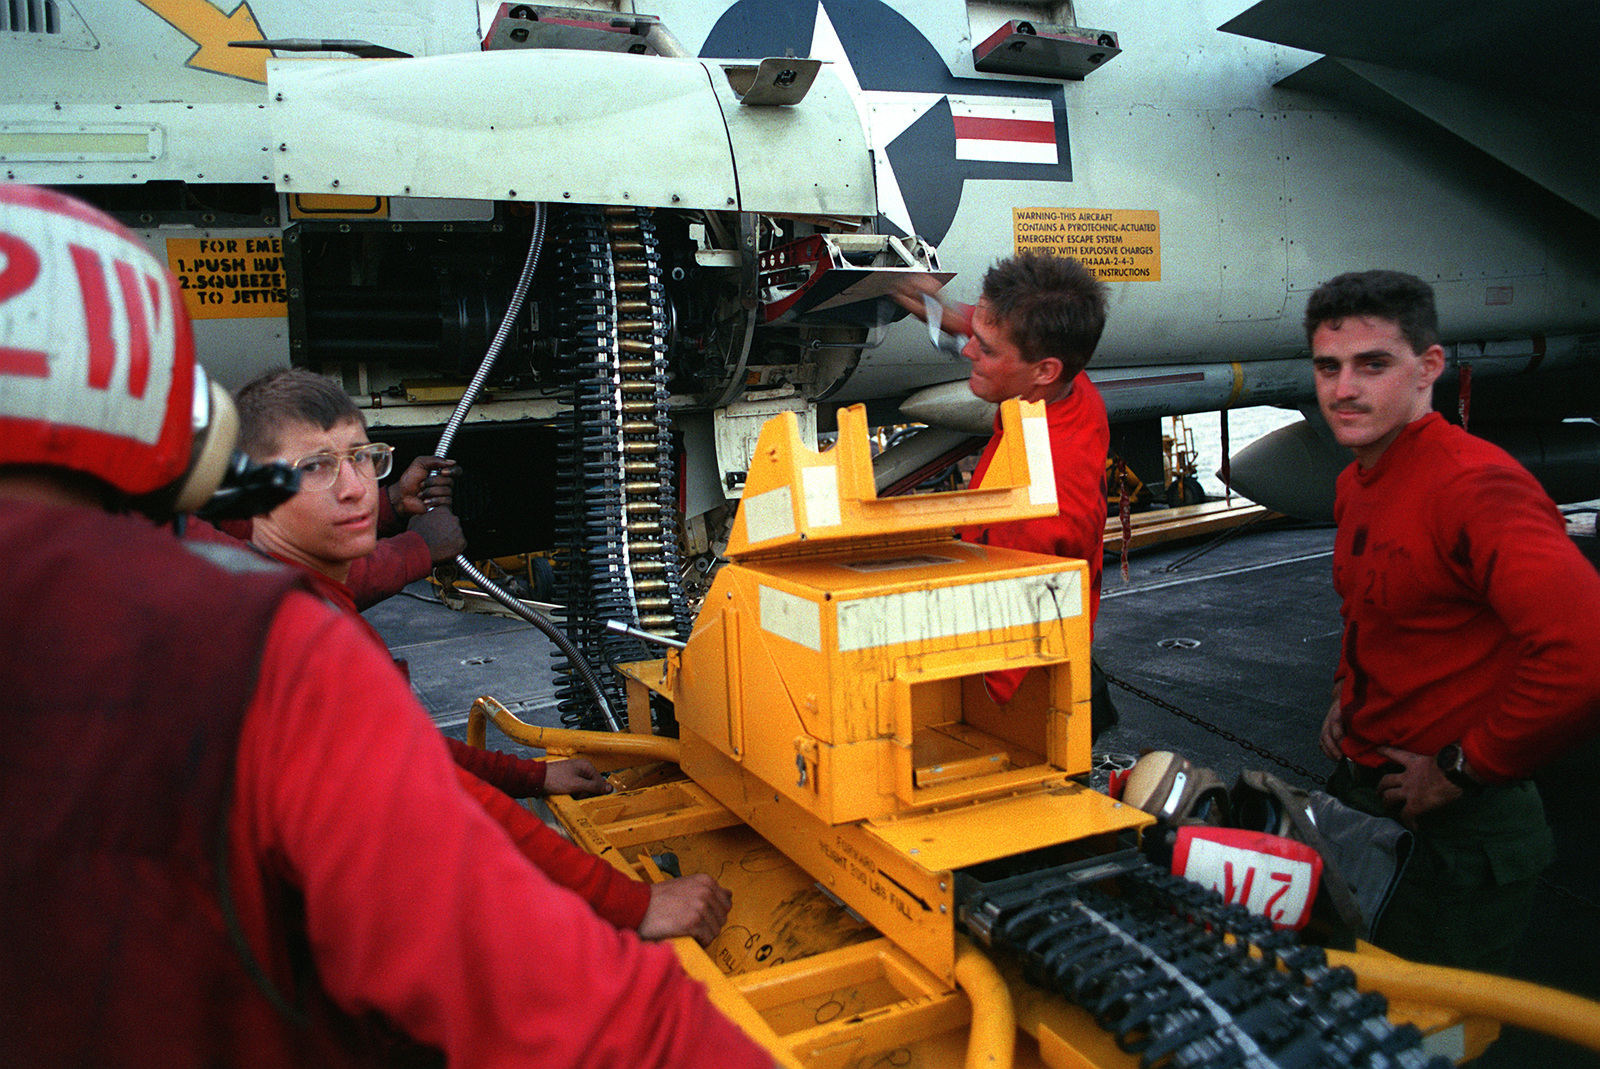 Aviation ordnancemen from Fighter Squadron 21 (VF-21) use a linkless ammunition loading system (LALS) to load a 20mm cannon on an F-14A Tomcat aircraft aboard the aircraft carrier USS INDEPENDENCE (CV-62). The INDEPENDENCE is in the gulf as part of Operation Desert Shield